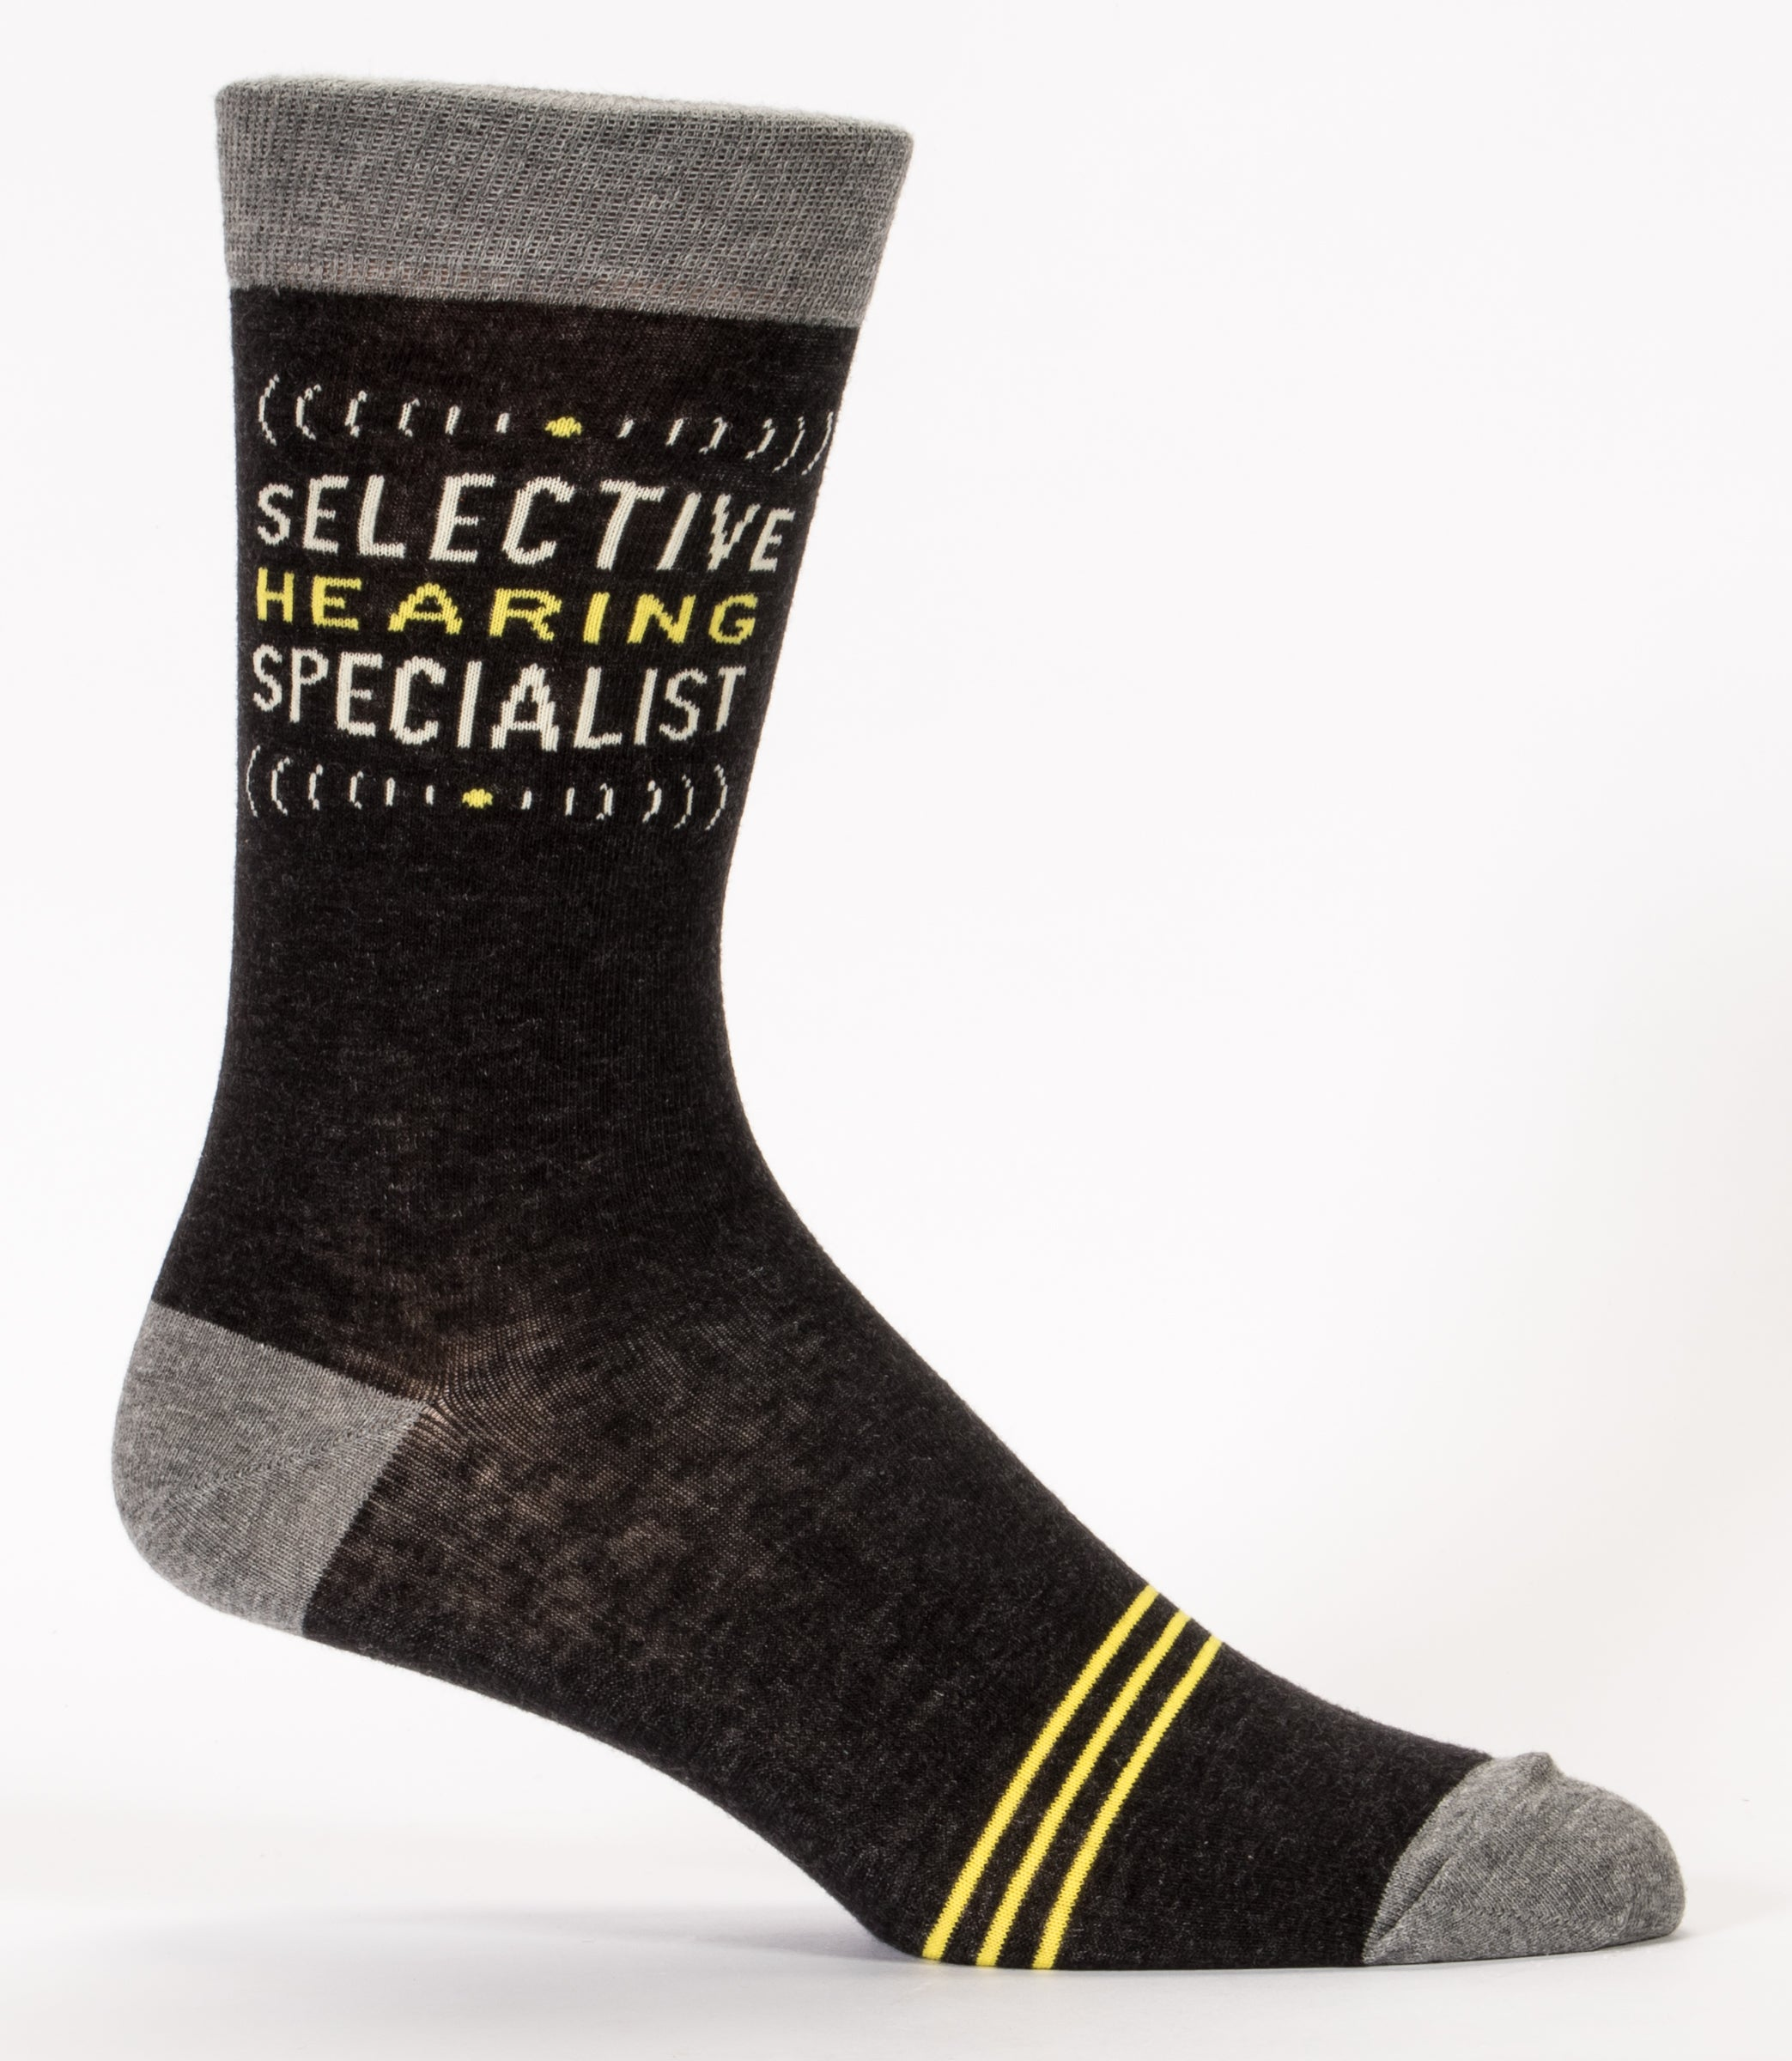 BlueQ Men's Crew Socks: Selective Hearing Specialist